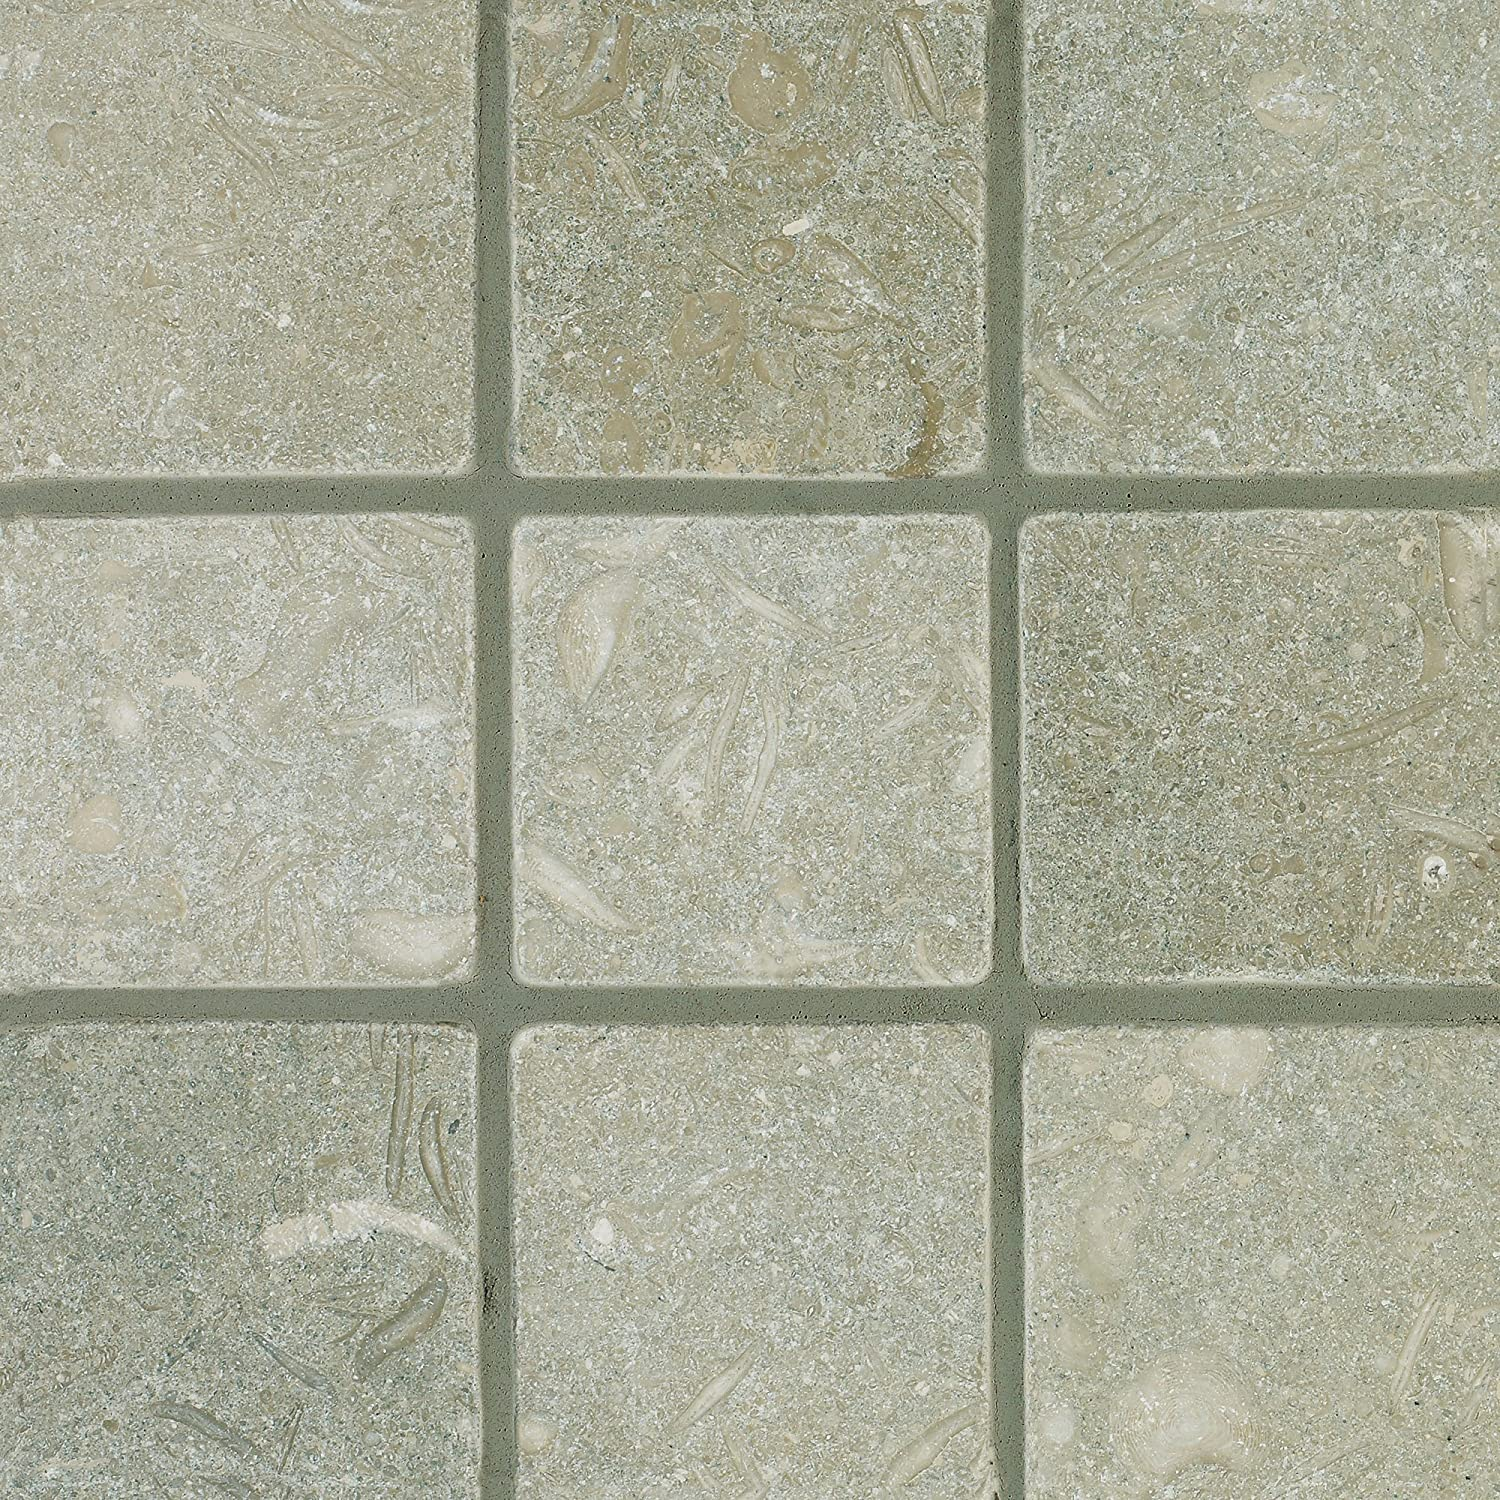 Seagrass 5-Total Square Feet Arizona Tile 4 by 4-Inch Tumbled Limestone Tile